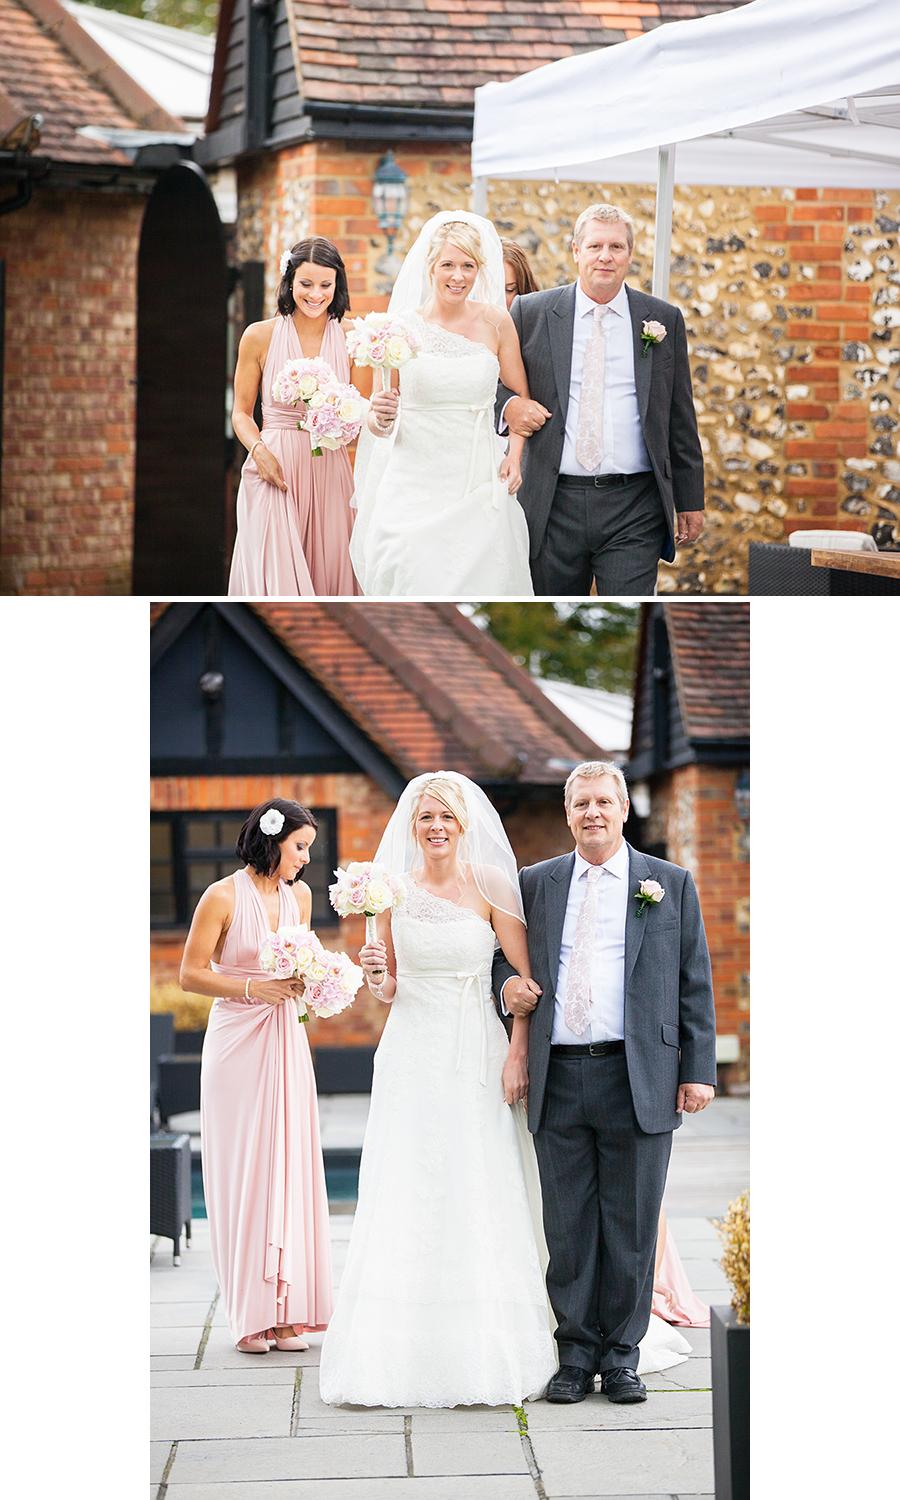 Sanctum on the Green Wedding Photographer , Sanctum on the Green Wedding, Sanctum on the Green, outdoor wedding, bride walking to wedding, bride and dad, bride and bridesmaids, bride walking to ceremony